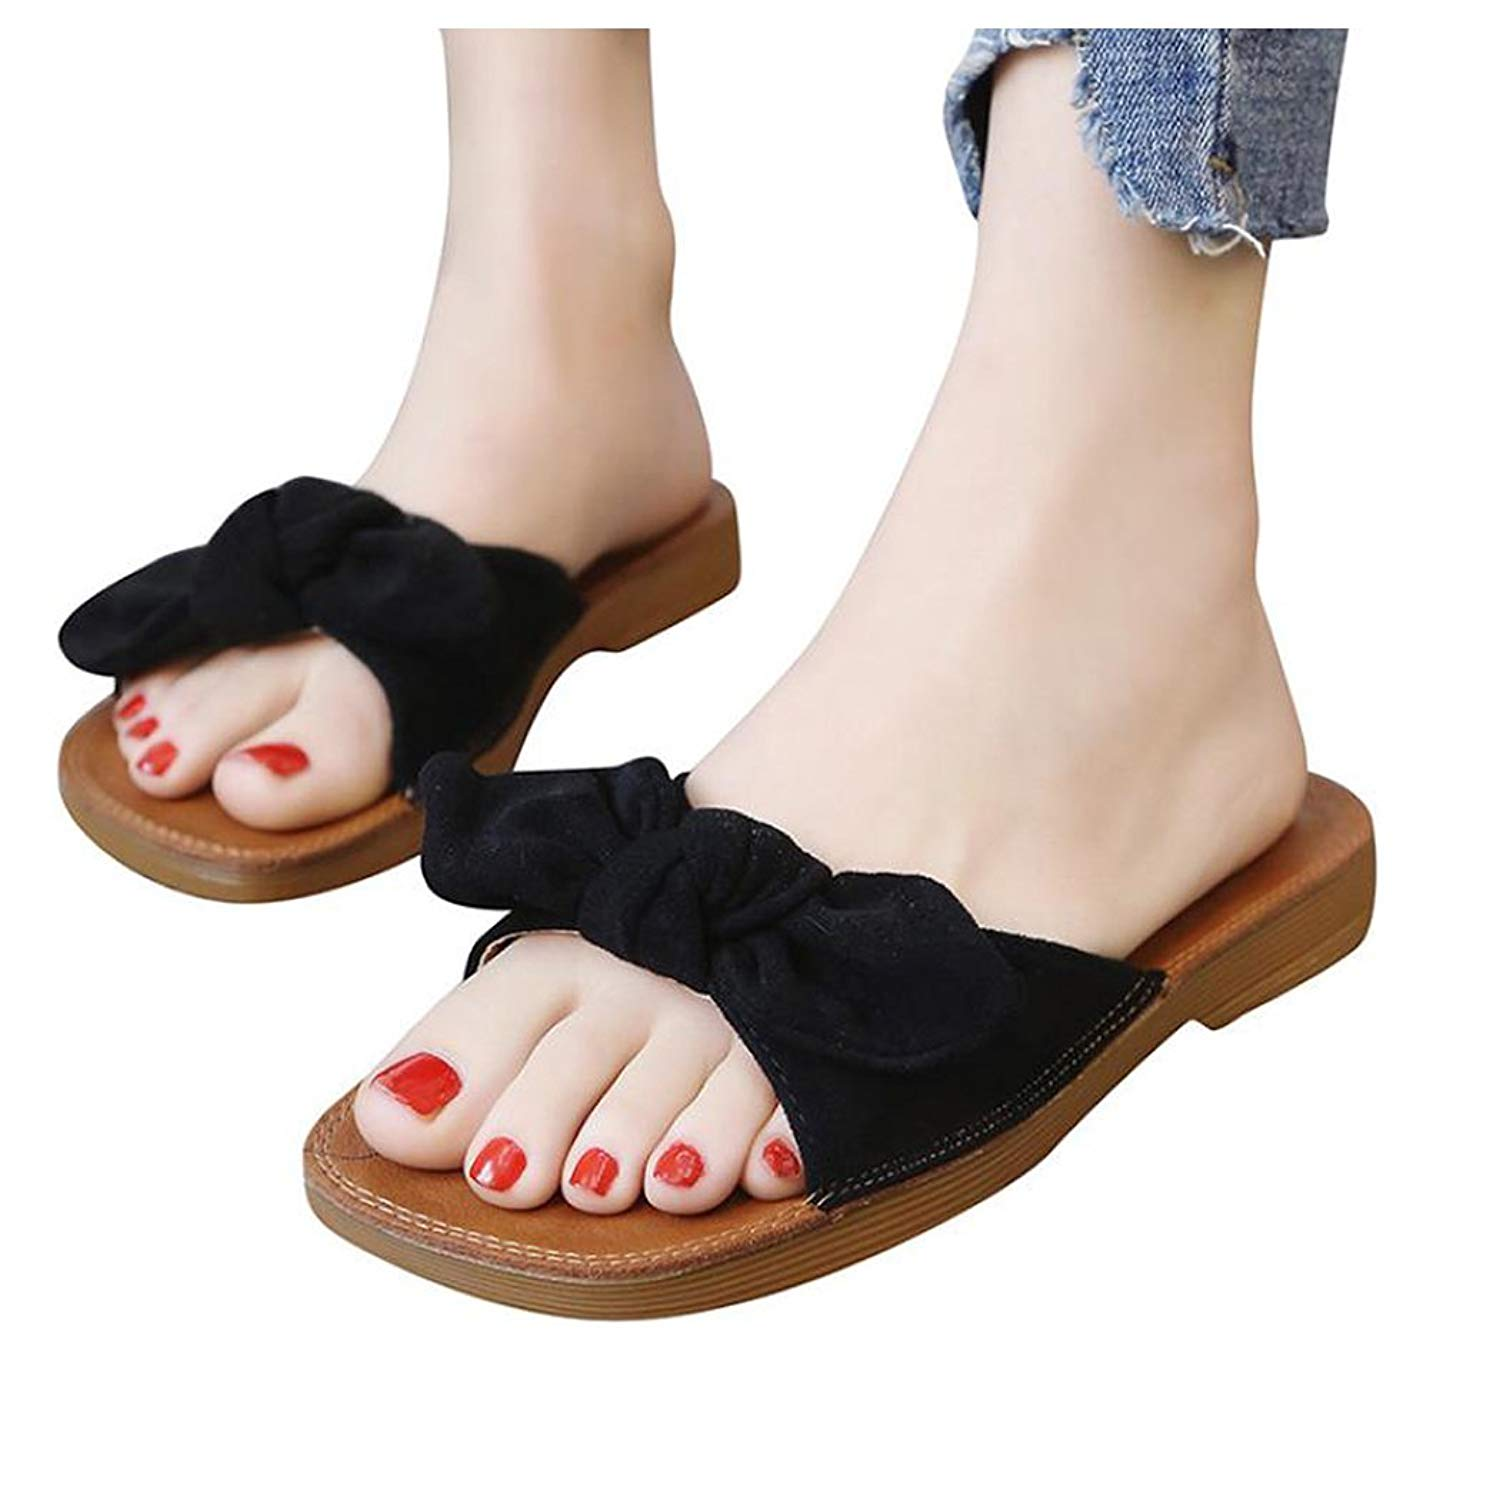 1ffaf80135d3 Get Quotations · Inkach Womens Wedge Sandals ❤ Fashion Summer Chunky Heeled Wedge  Sandals Thong Slippers Flip-